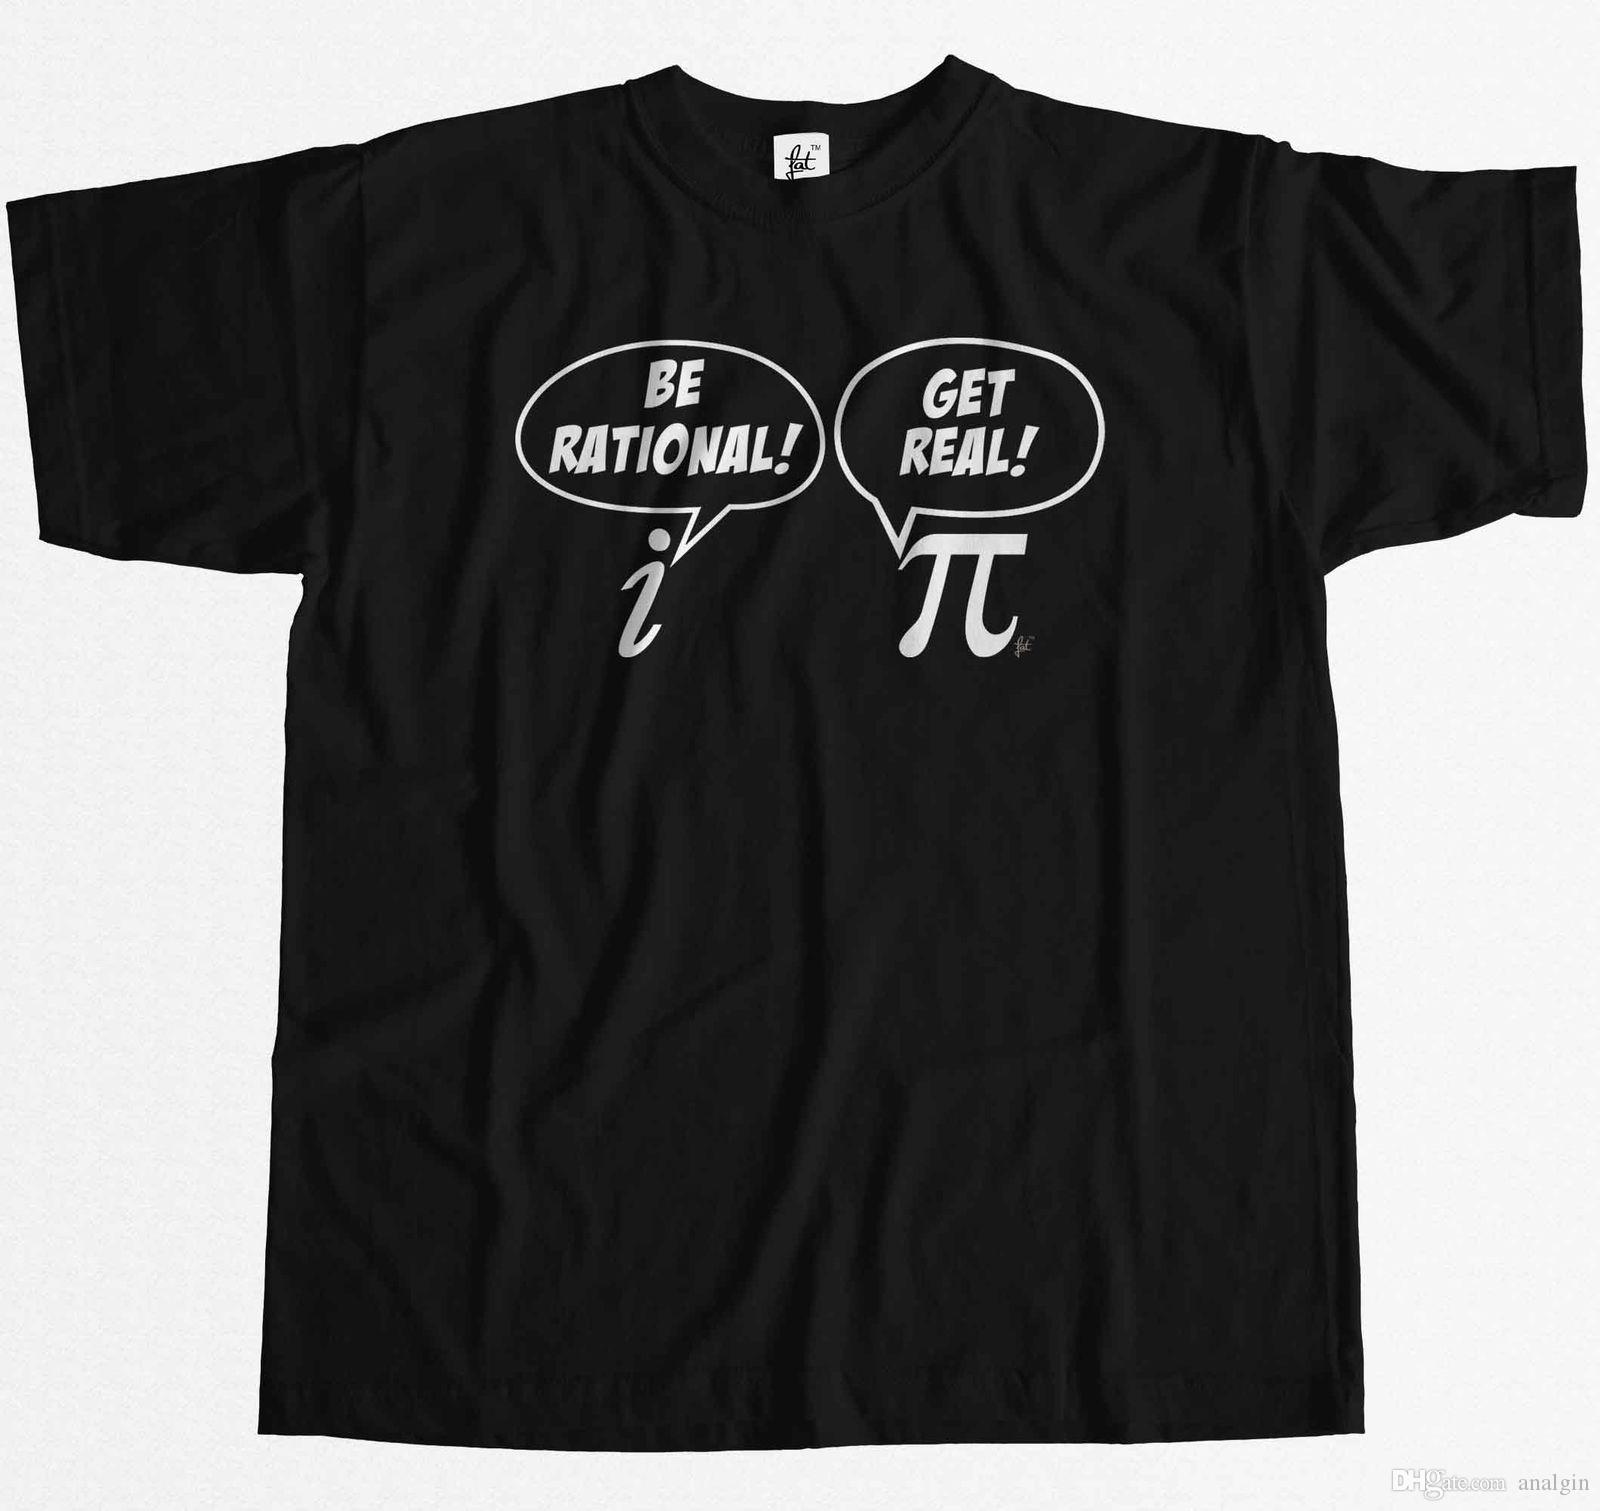 1c7e7ee23 Funny Maths Be Rational Get Real Pi Complex Numbers Mens T Shirt T Shirt  And Shirt Shop T Shirts Online From Analgin, $10.03| DHgate.Com